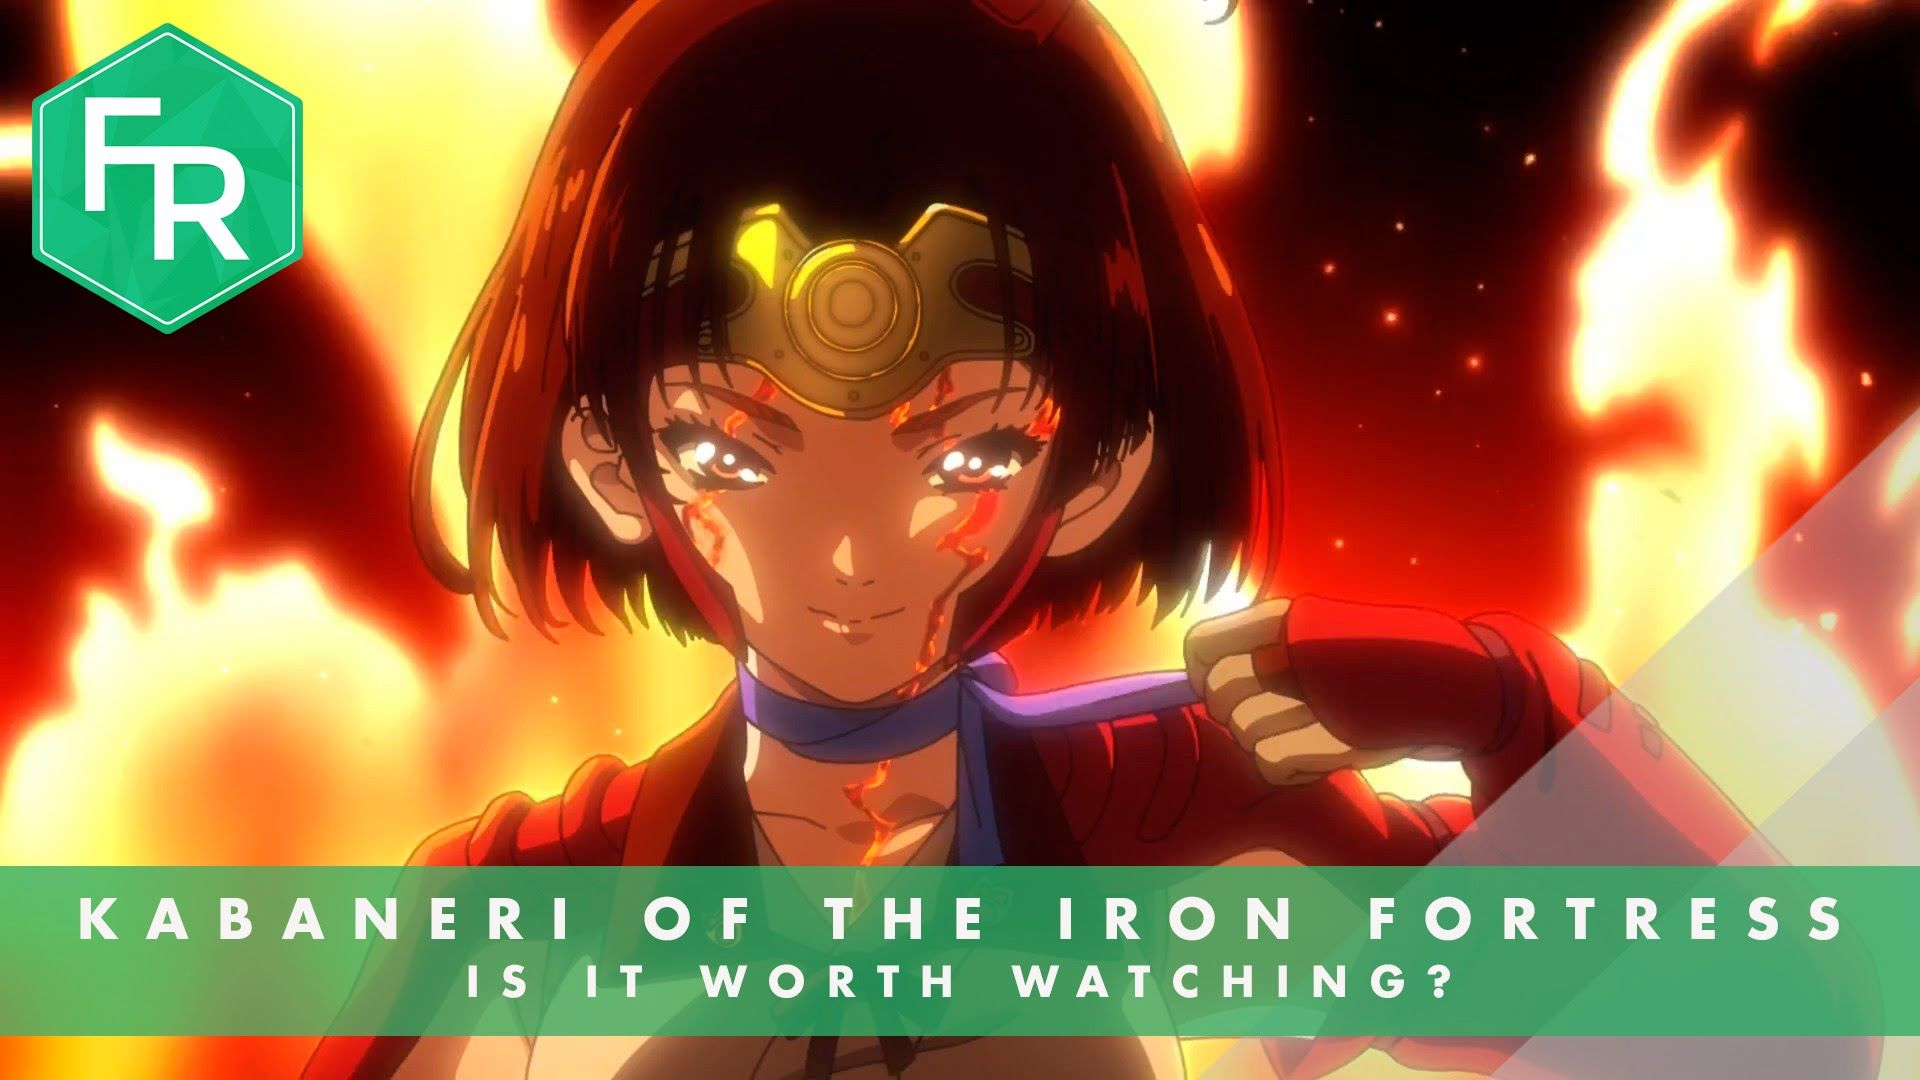 Kabaneri Of The Iron Fortress Download All Season Episode Iron Fortress Popular Anime Steampunk Anime